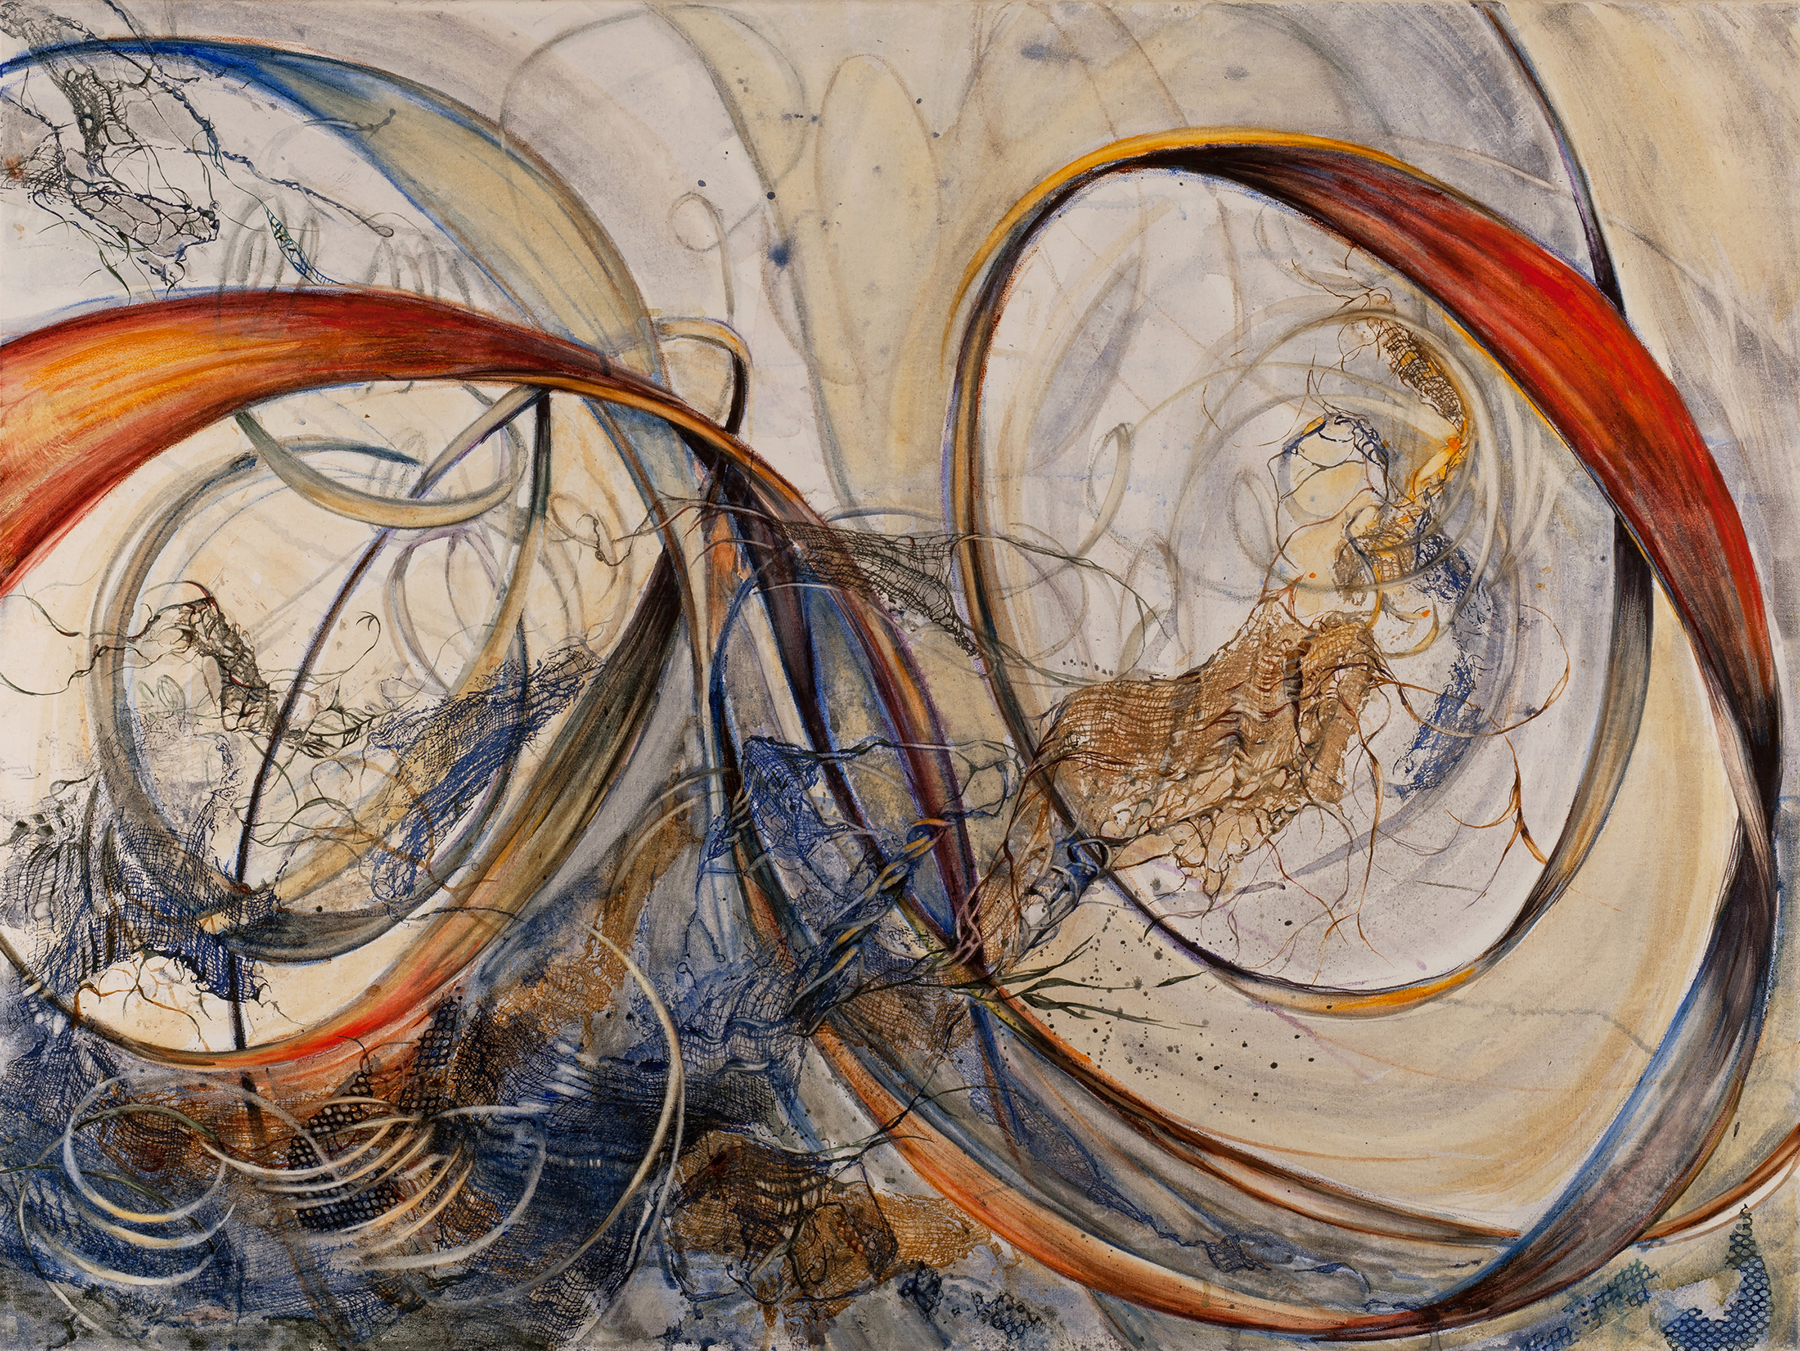 """Oscillate"" by Sarah Alexander at   Fountain Street Fine Art."